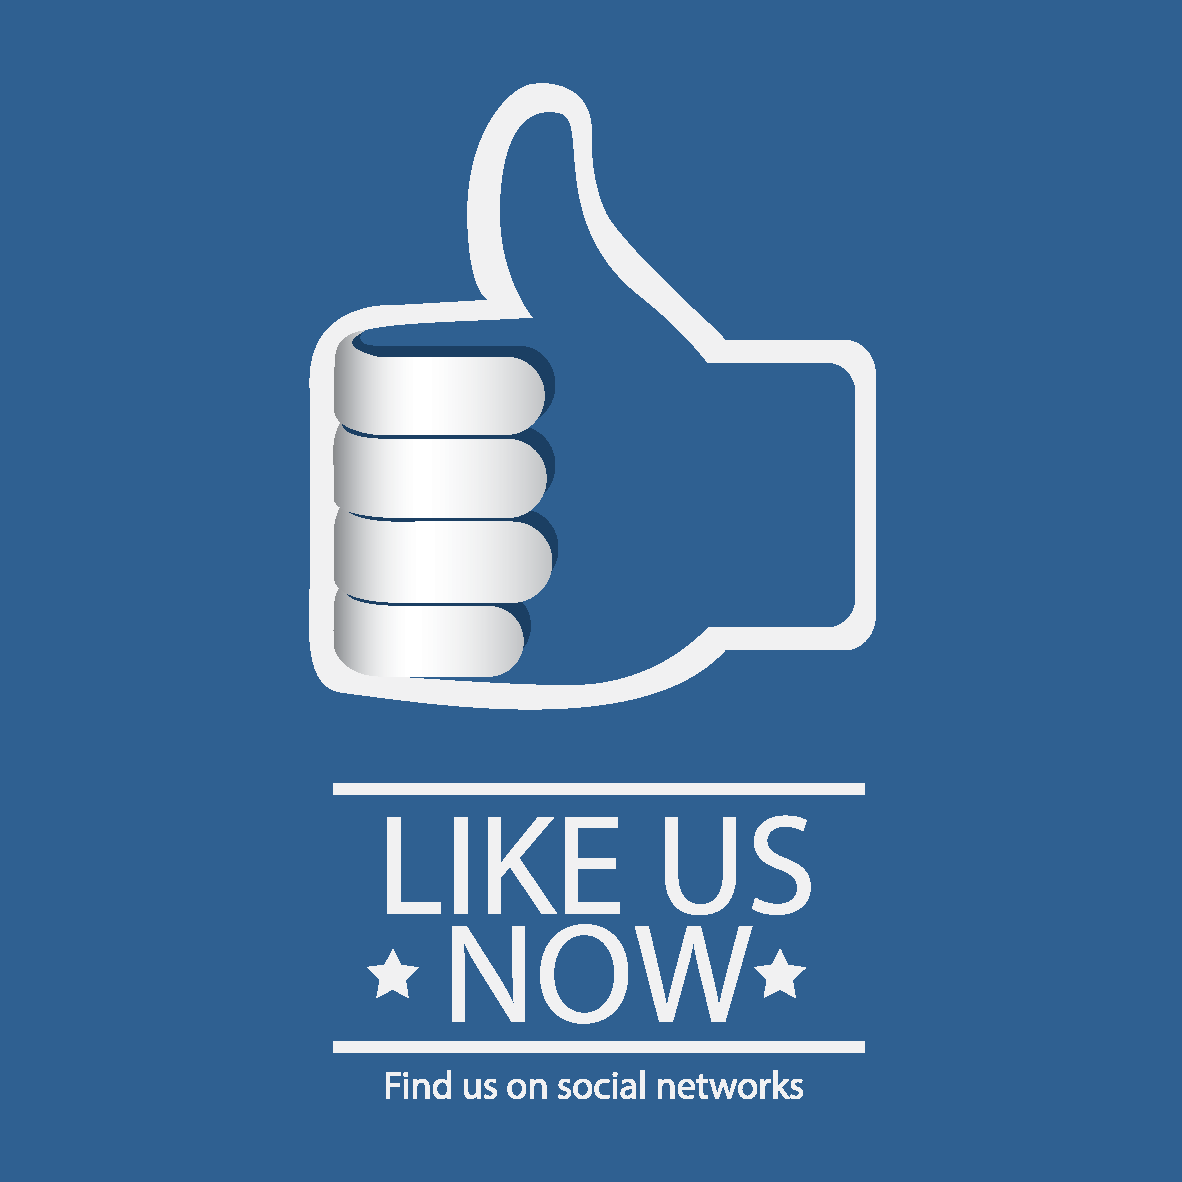 Like us now on Facebook.